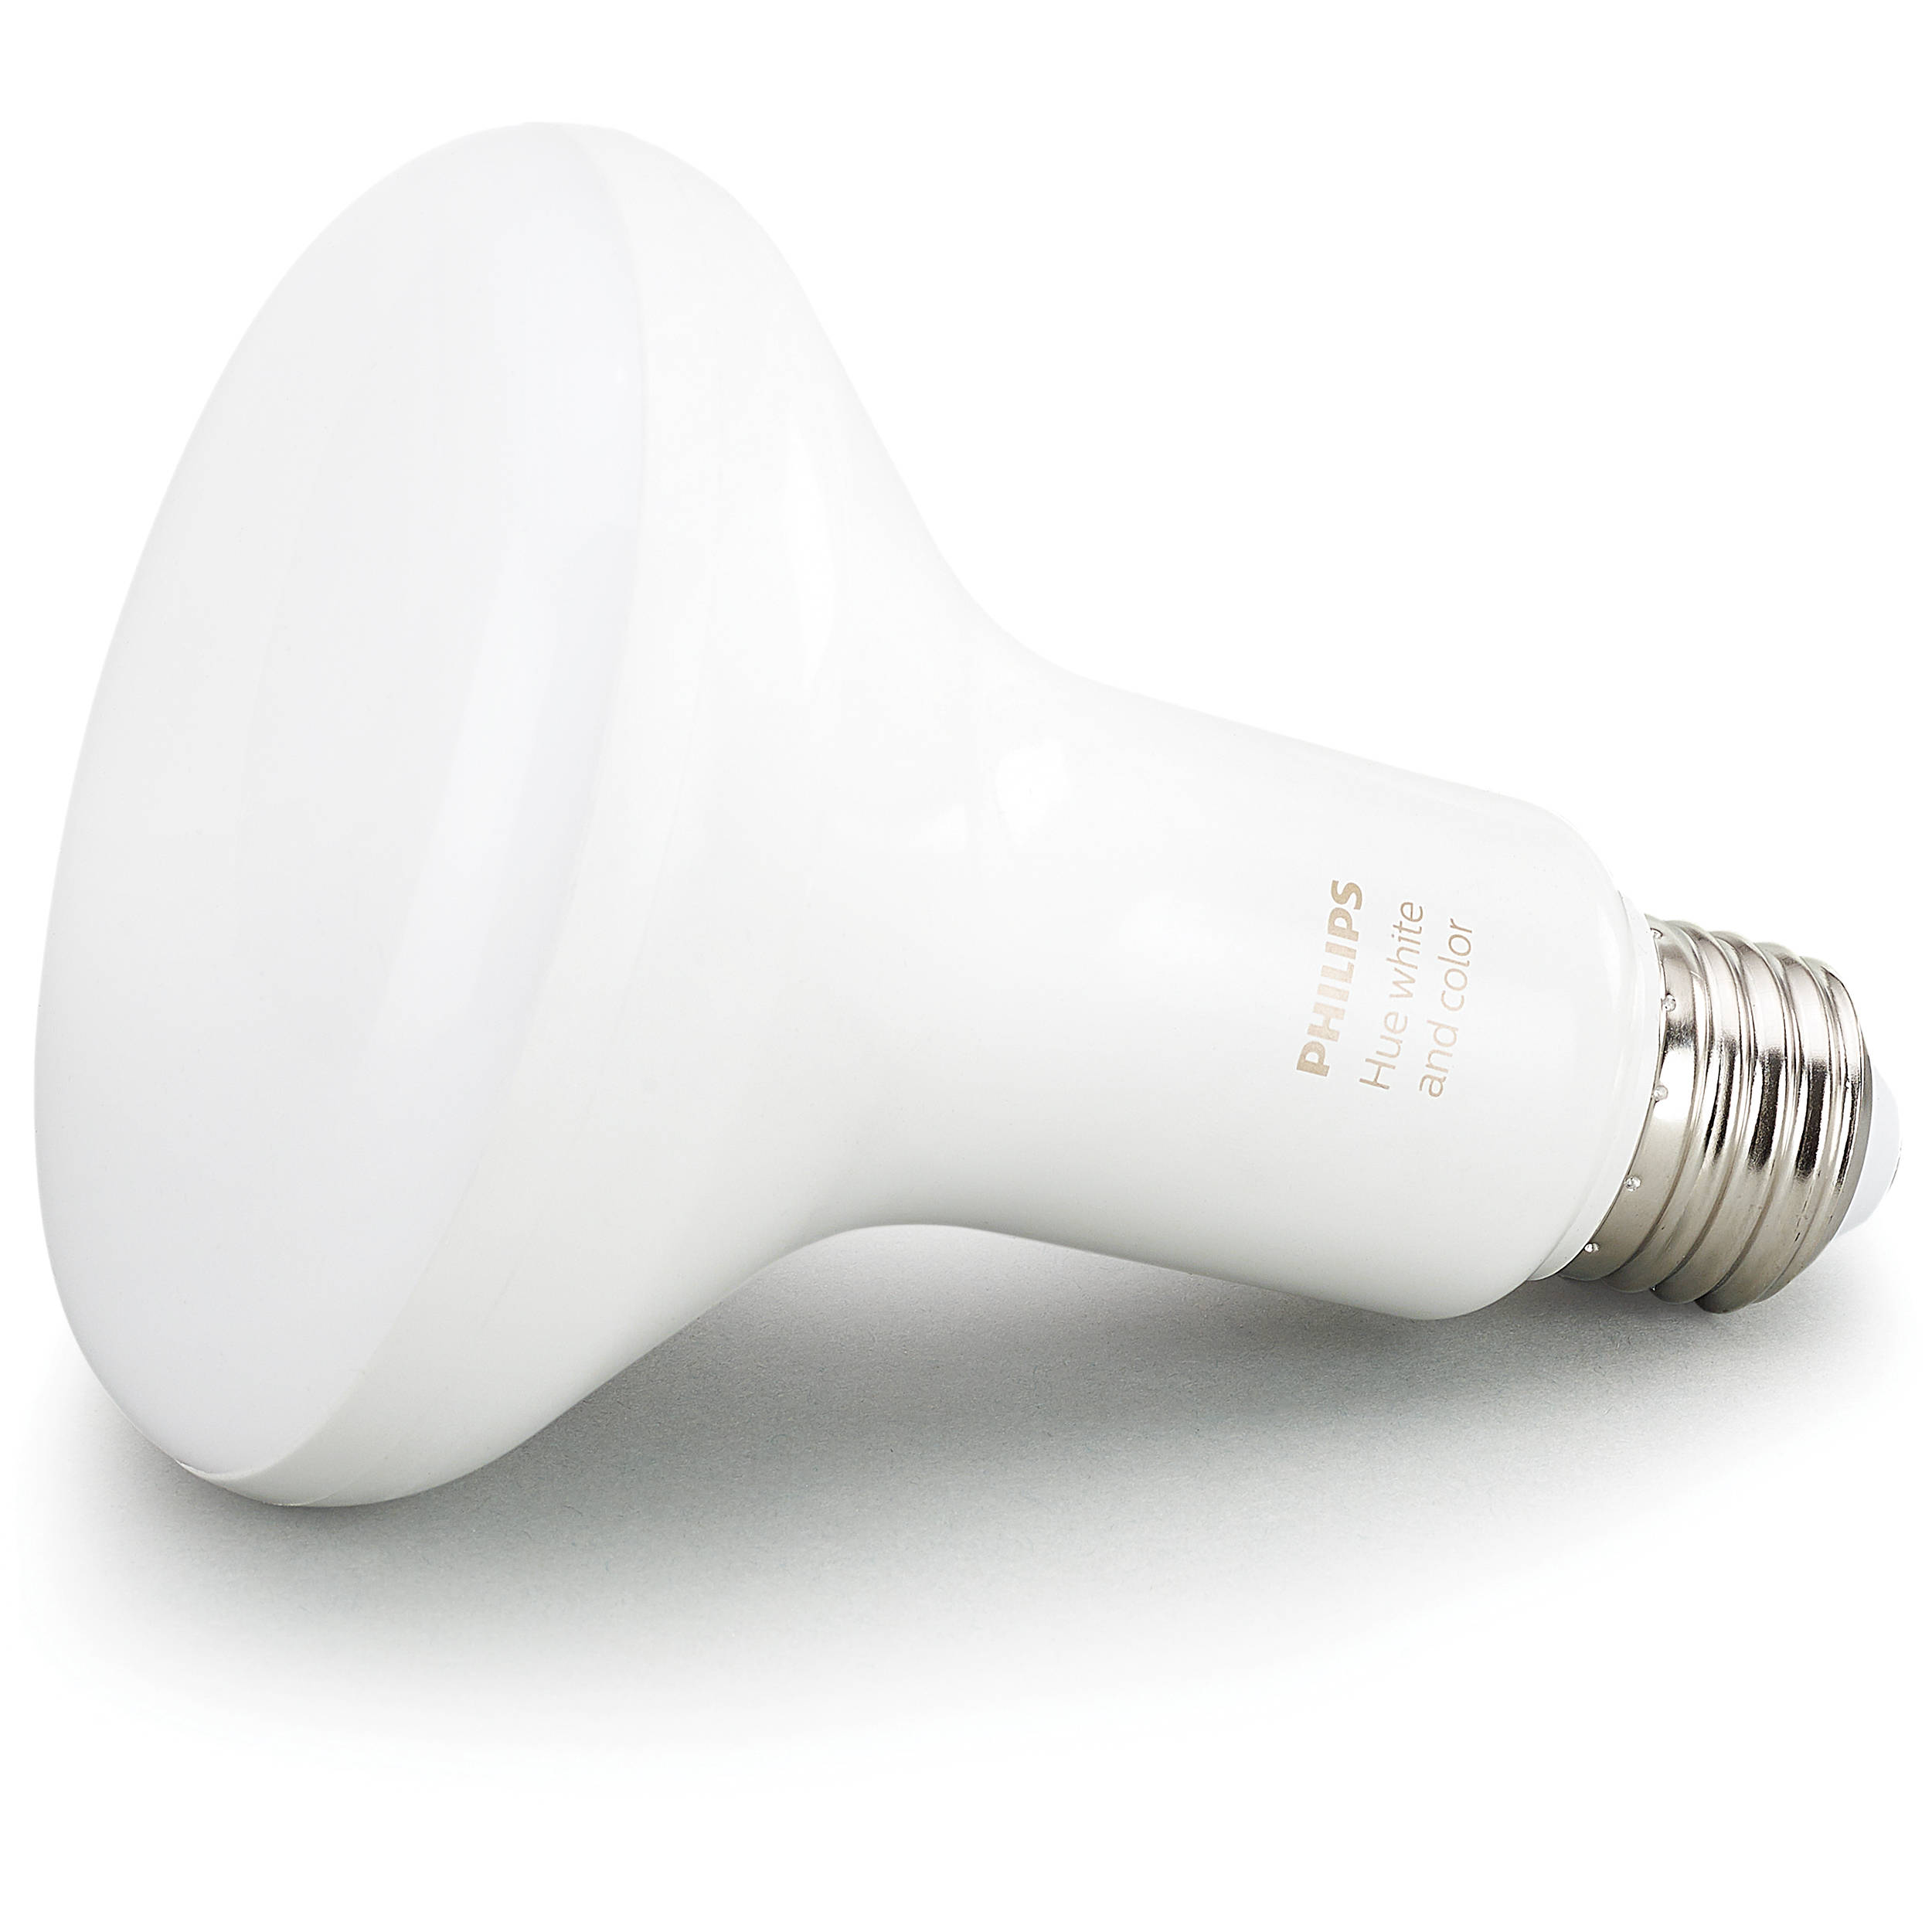 Philips Hue BR30 Bulb (White and Color Ambiance) 530188 B&H